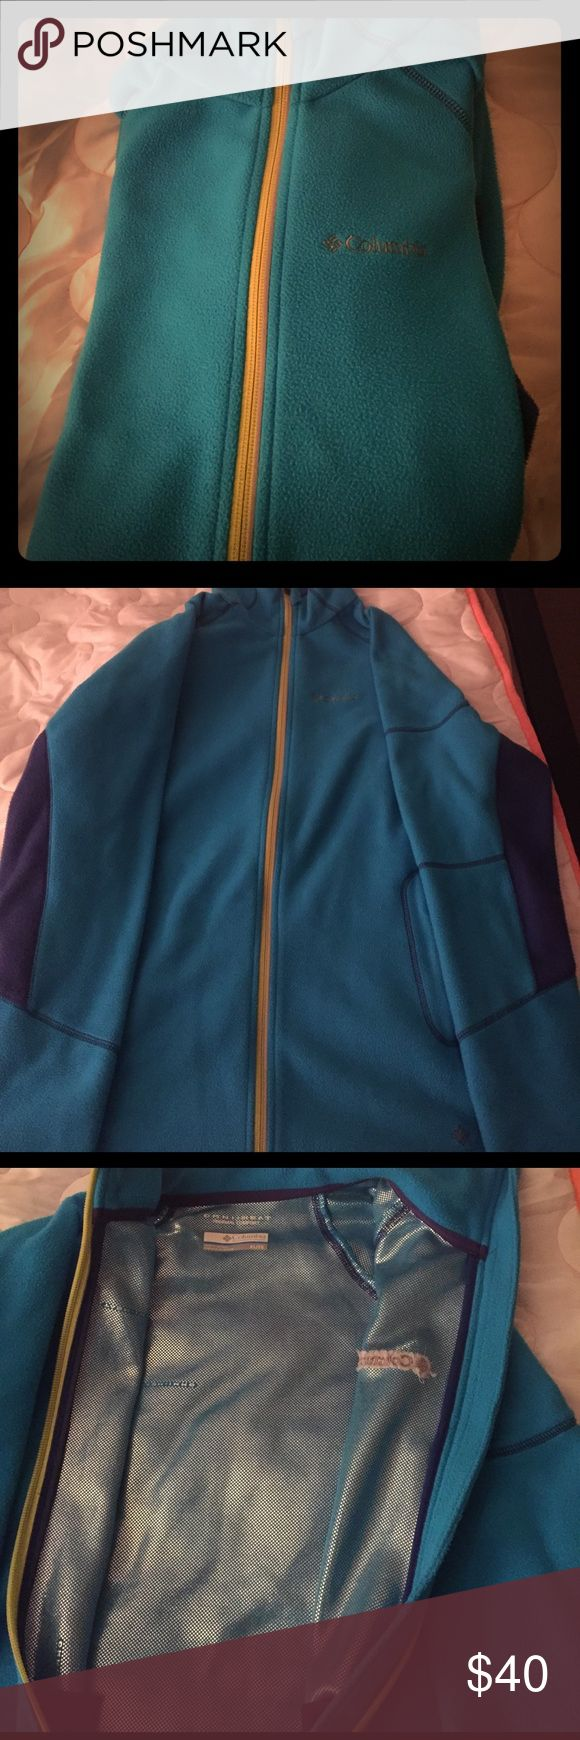 Omni heat Columbia jacket. Great shape, worn 1x. Omni heat, thermal comfort, it's a great jacket if your always cold like me. Columbia Jackets & Coats